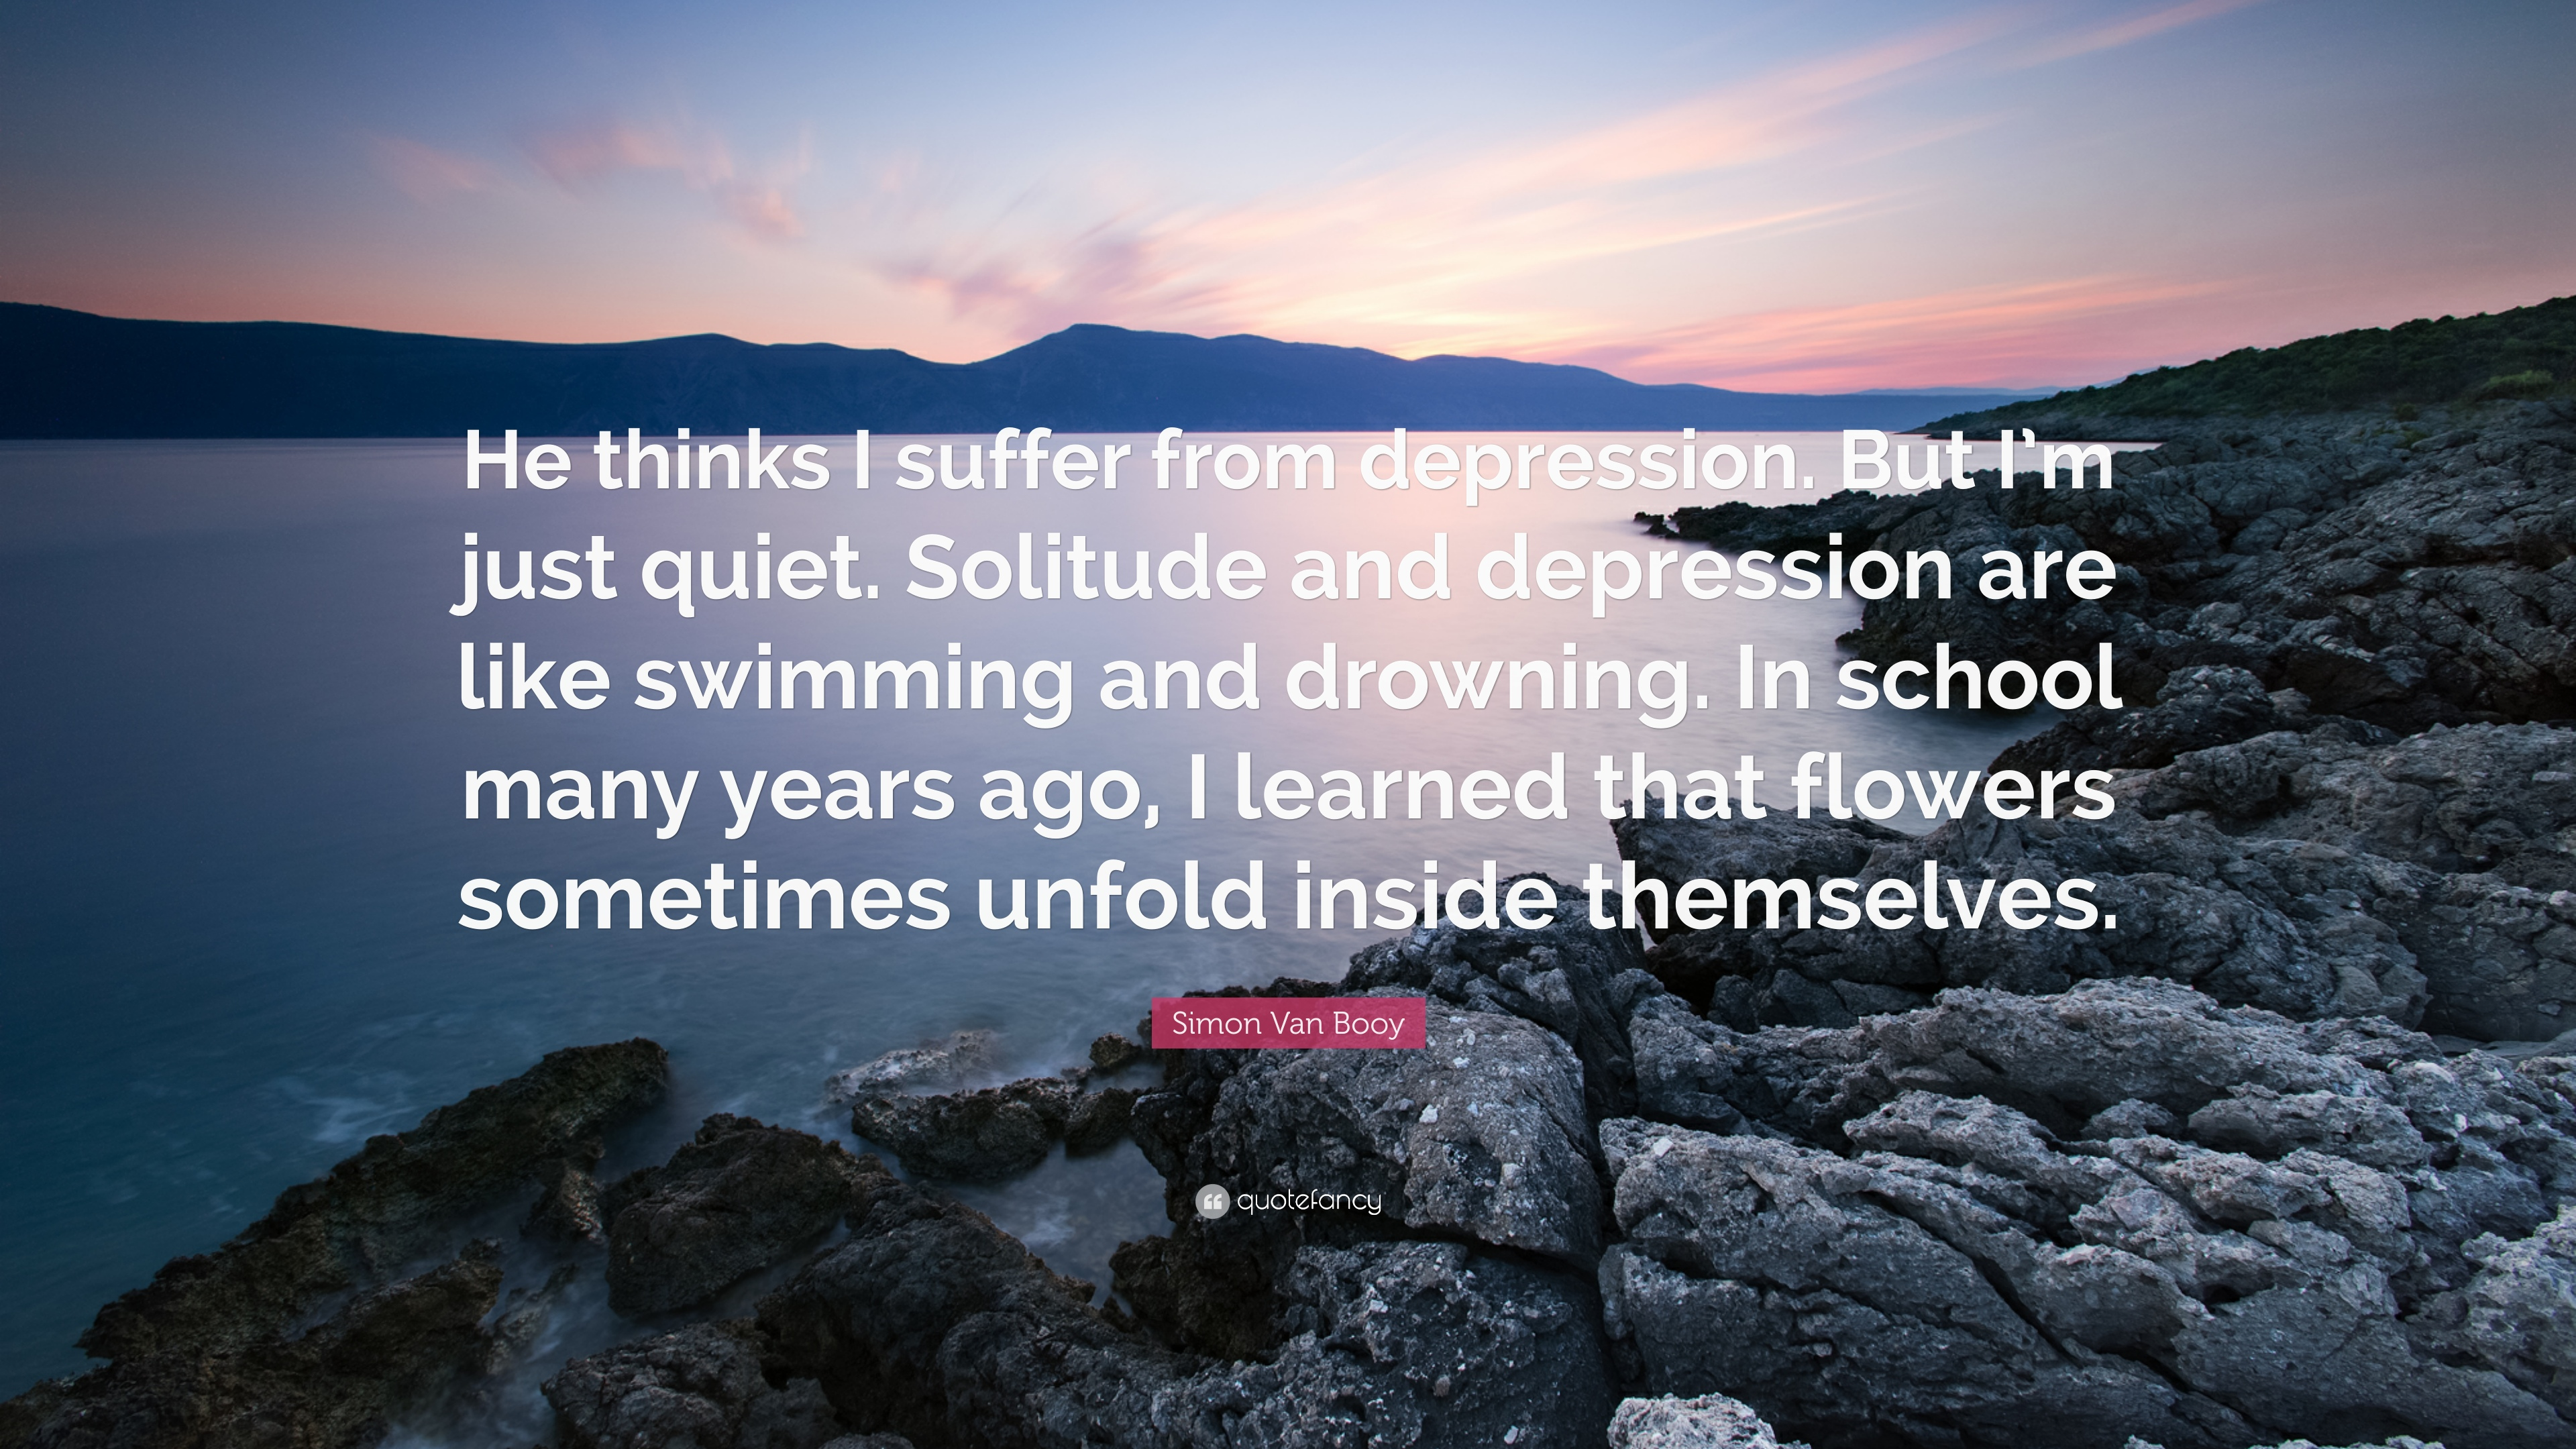 Image of: Lonely Simon Van Booy Quote he Thinks Suffer From Depression But I Quotefancy Simon Van Booy Quote he Thinks Suffer From Depression But Im